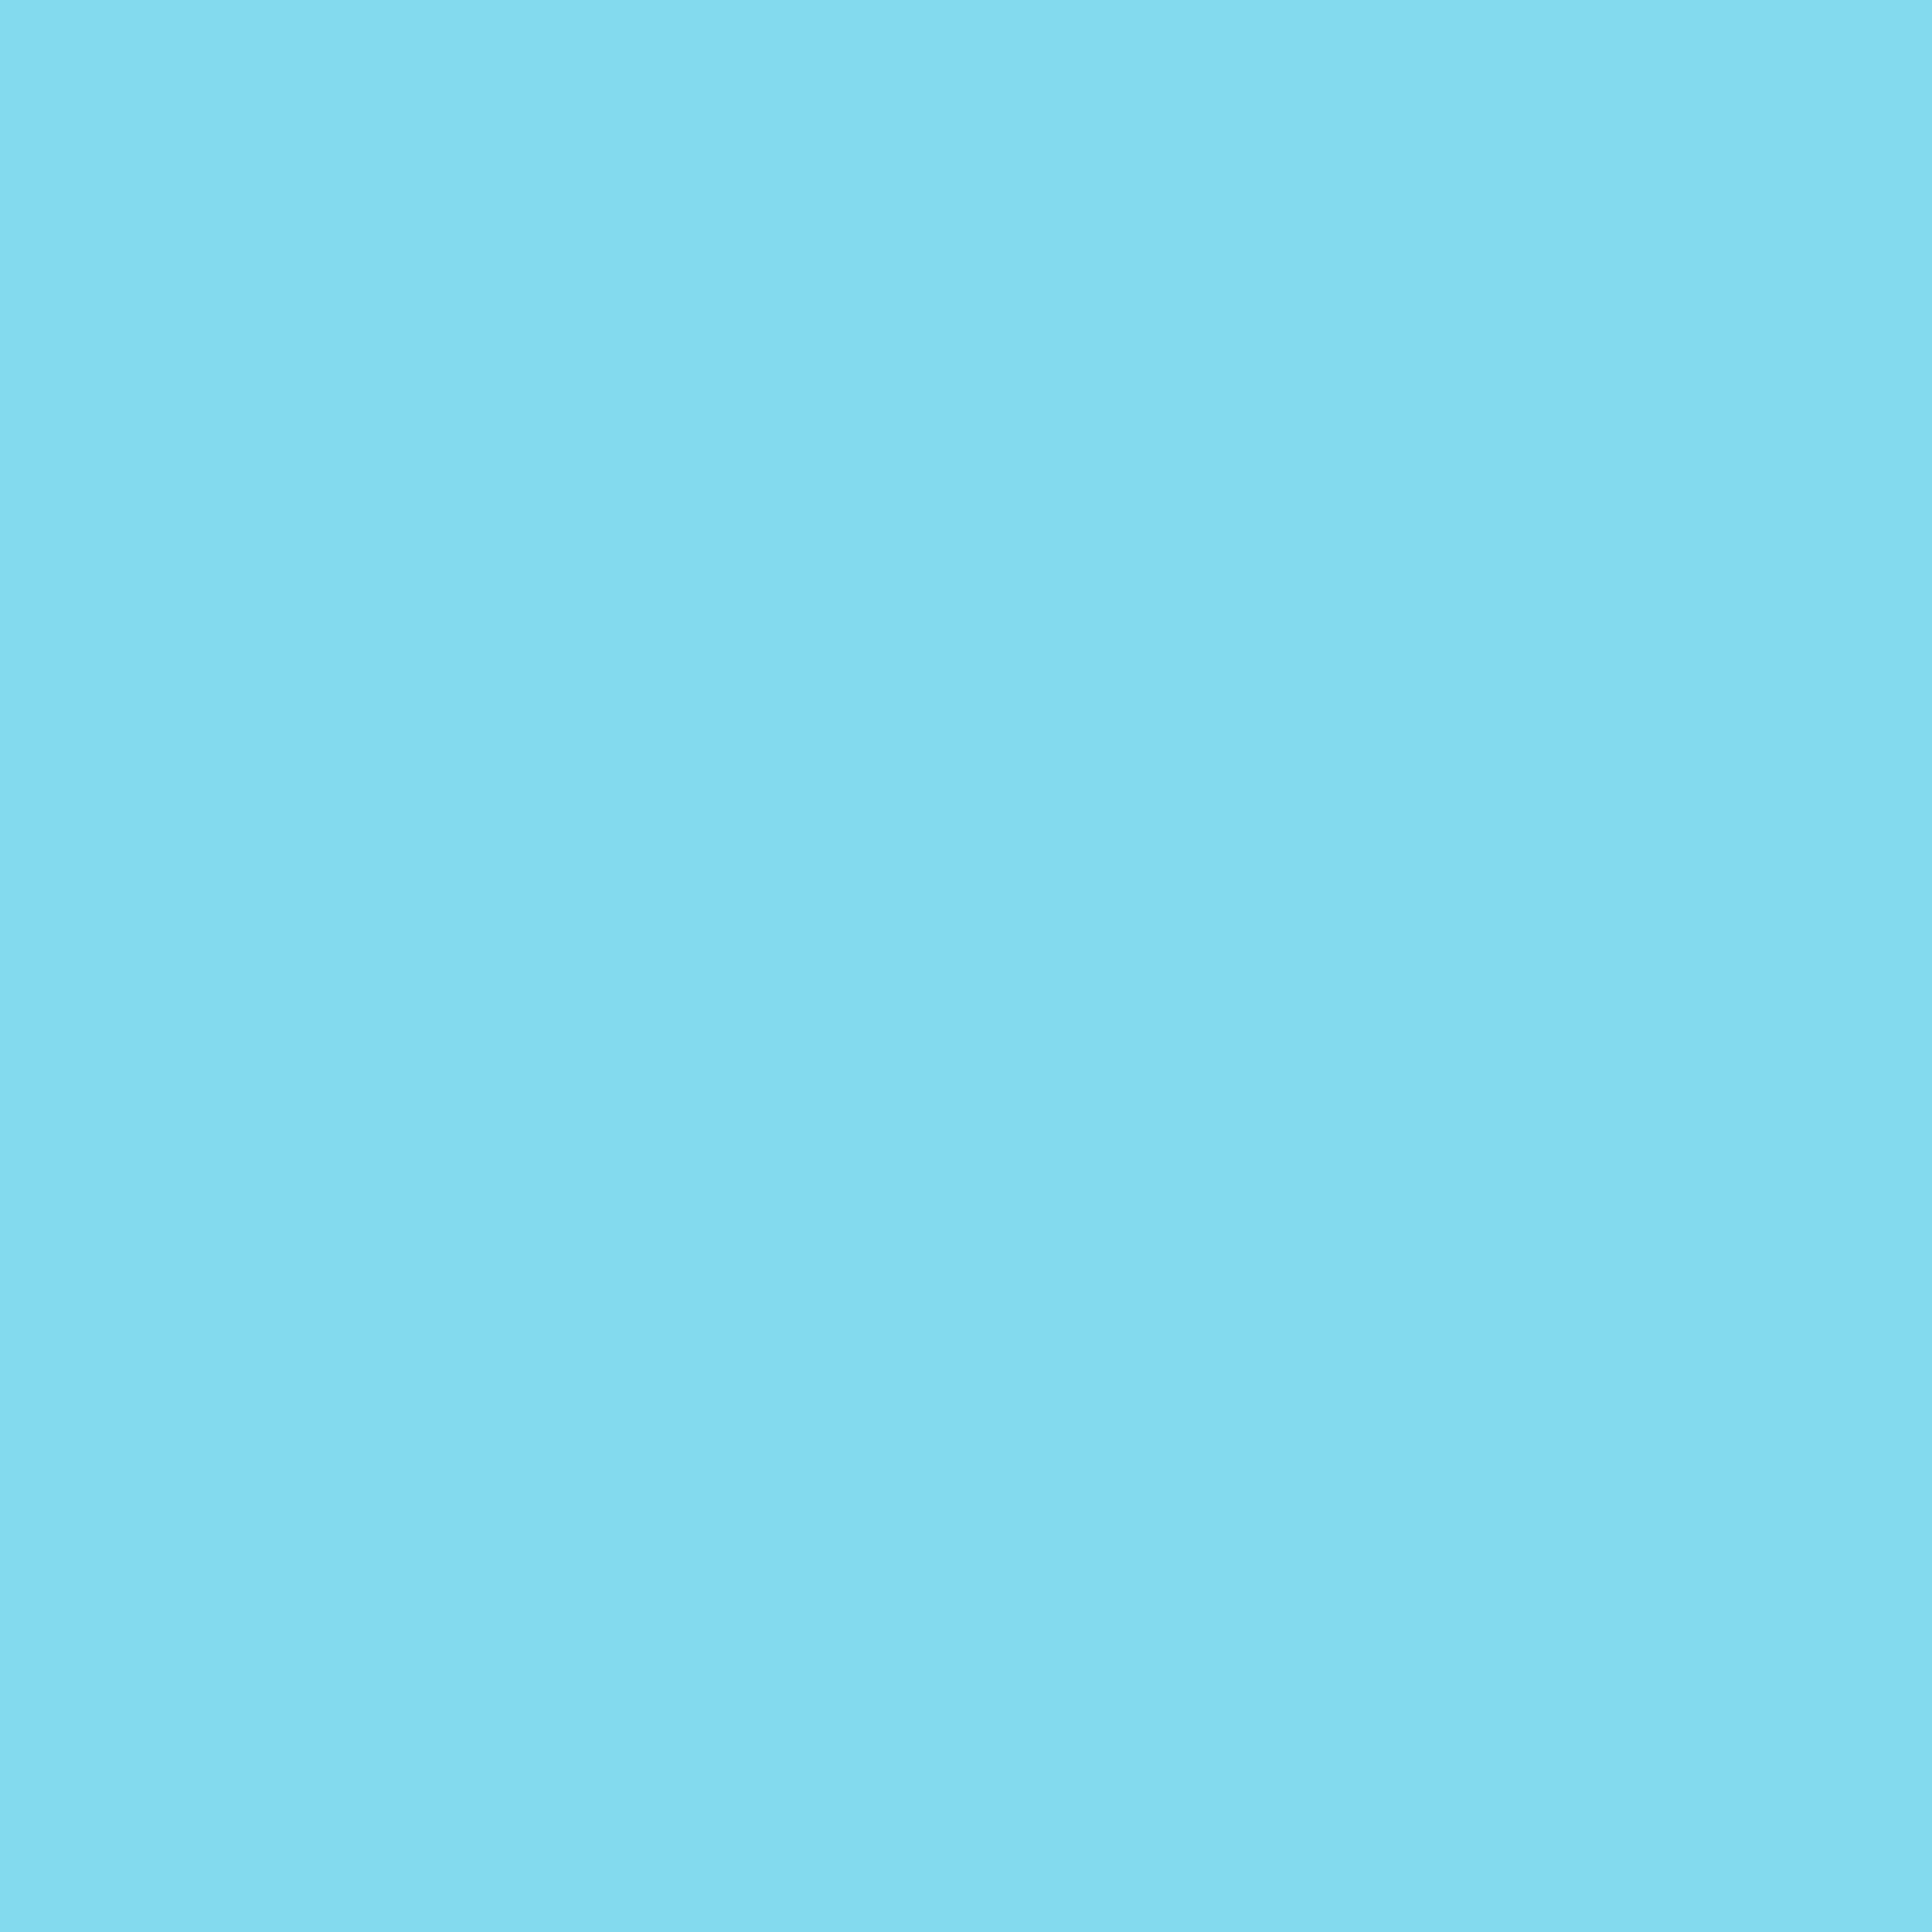 2732x2732 Medium Sky Blue Solid Color Background